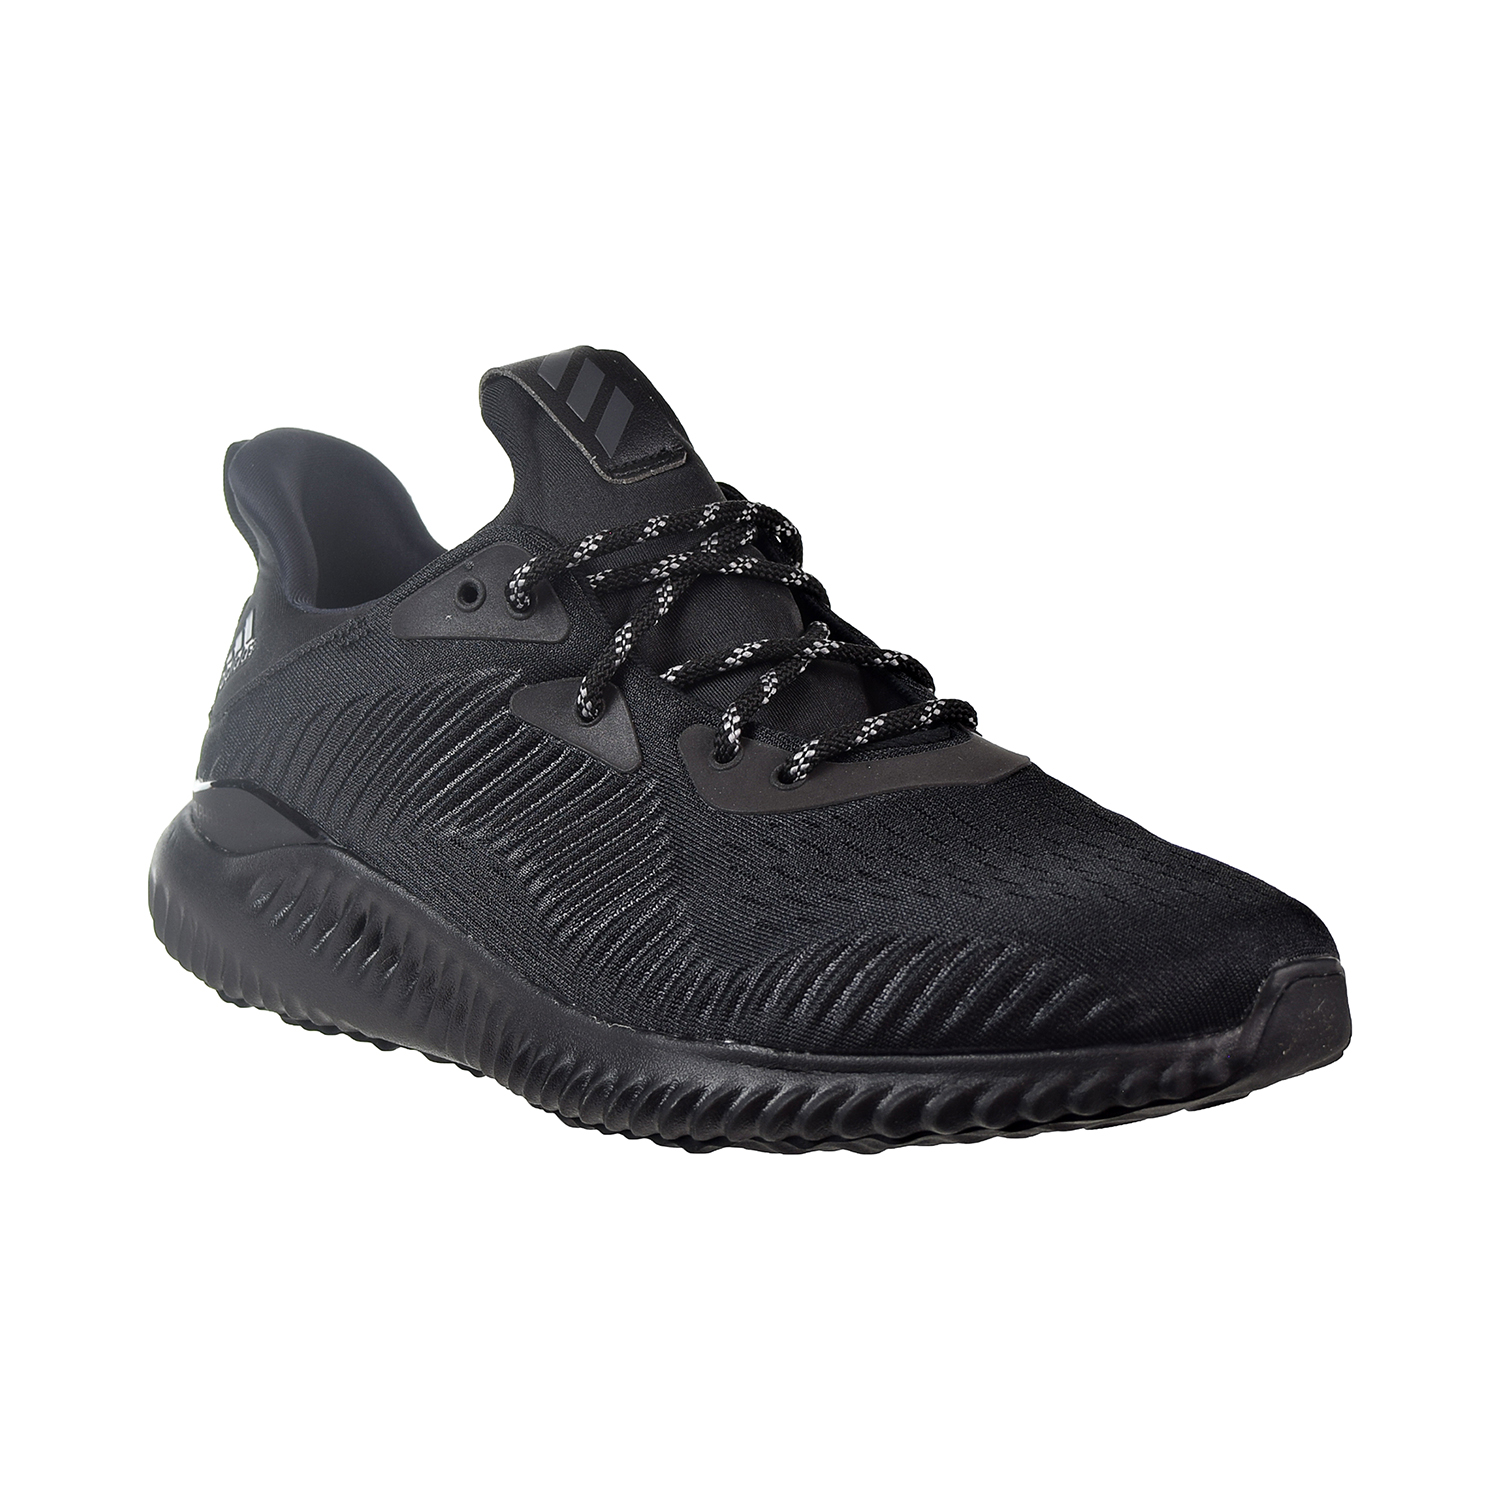 Adidas Alphabounce EM Men s Shoes Triple Black CQ0781  8c97e7fd5